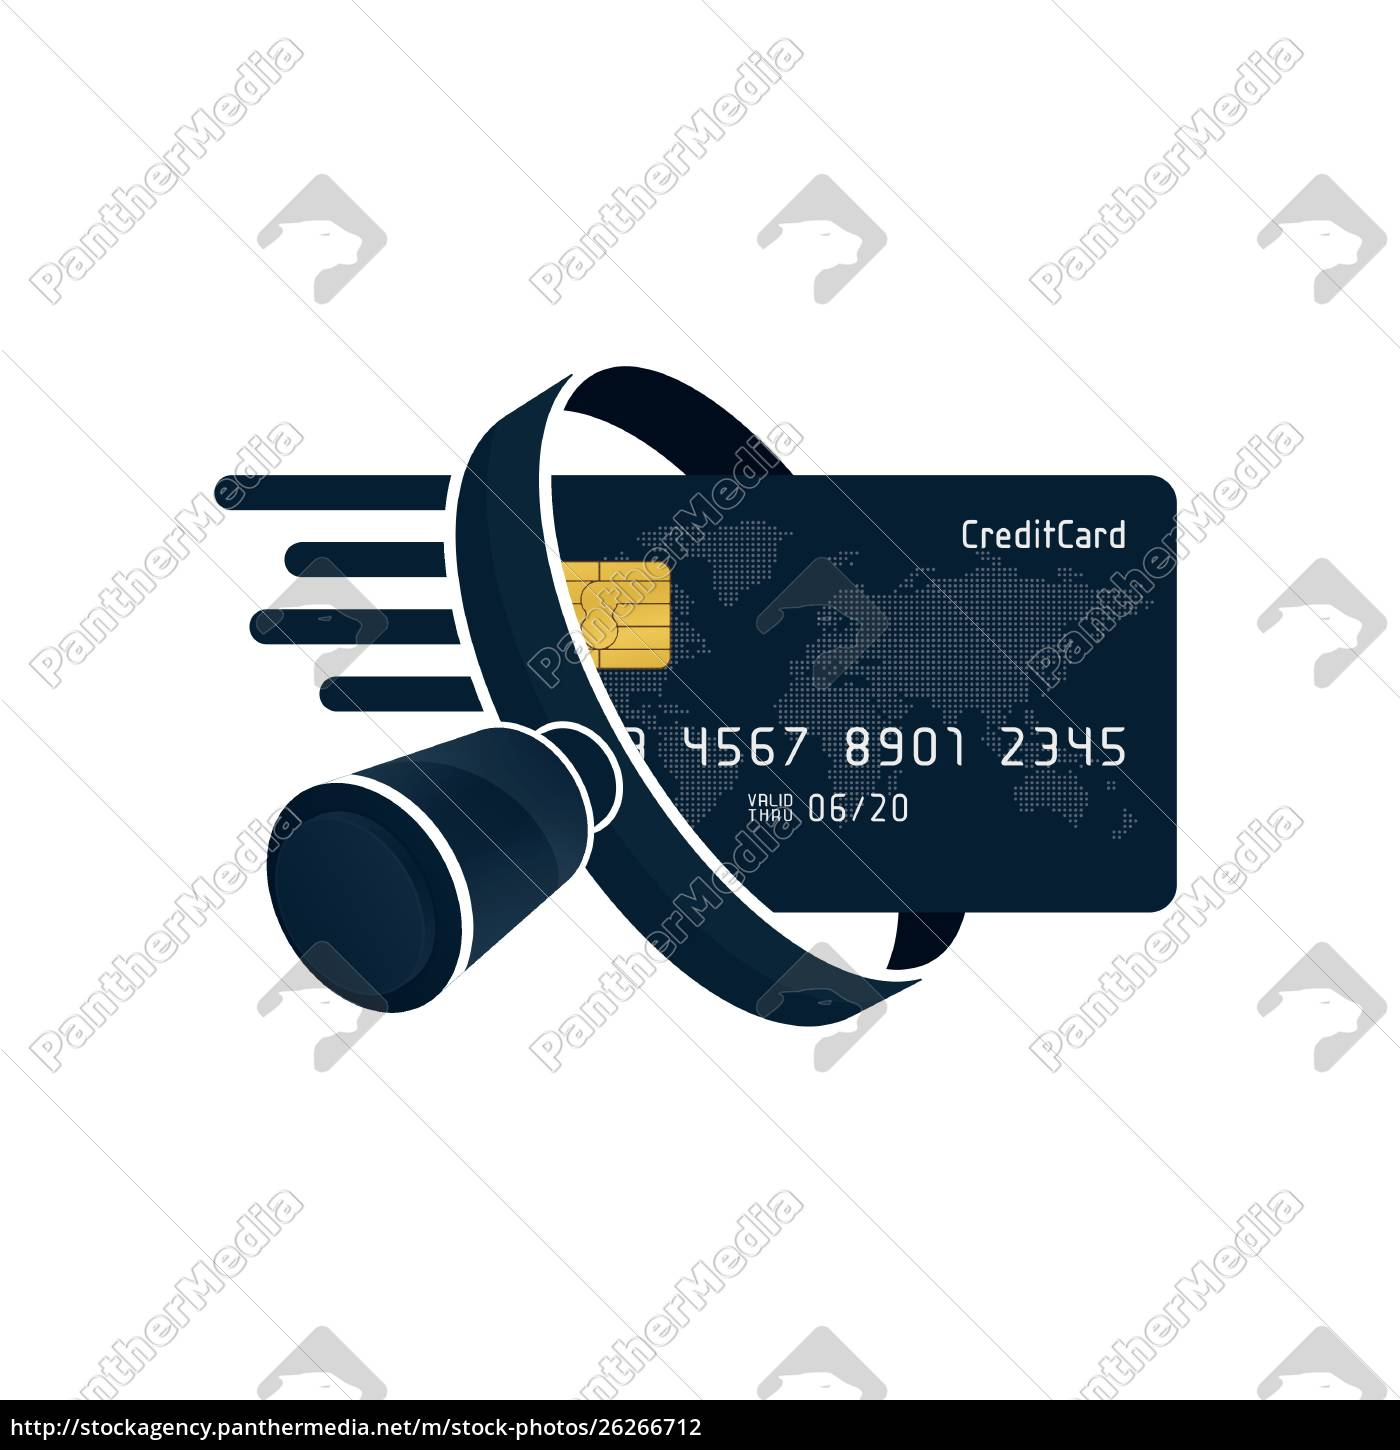 black, credit, card, and, magnifying, glass - 26266712